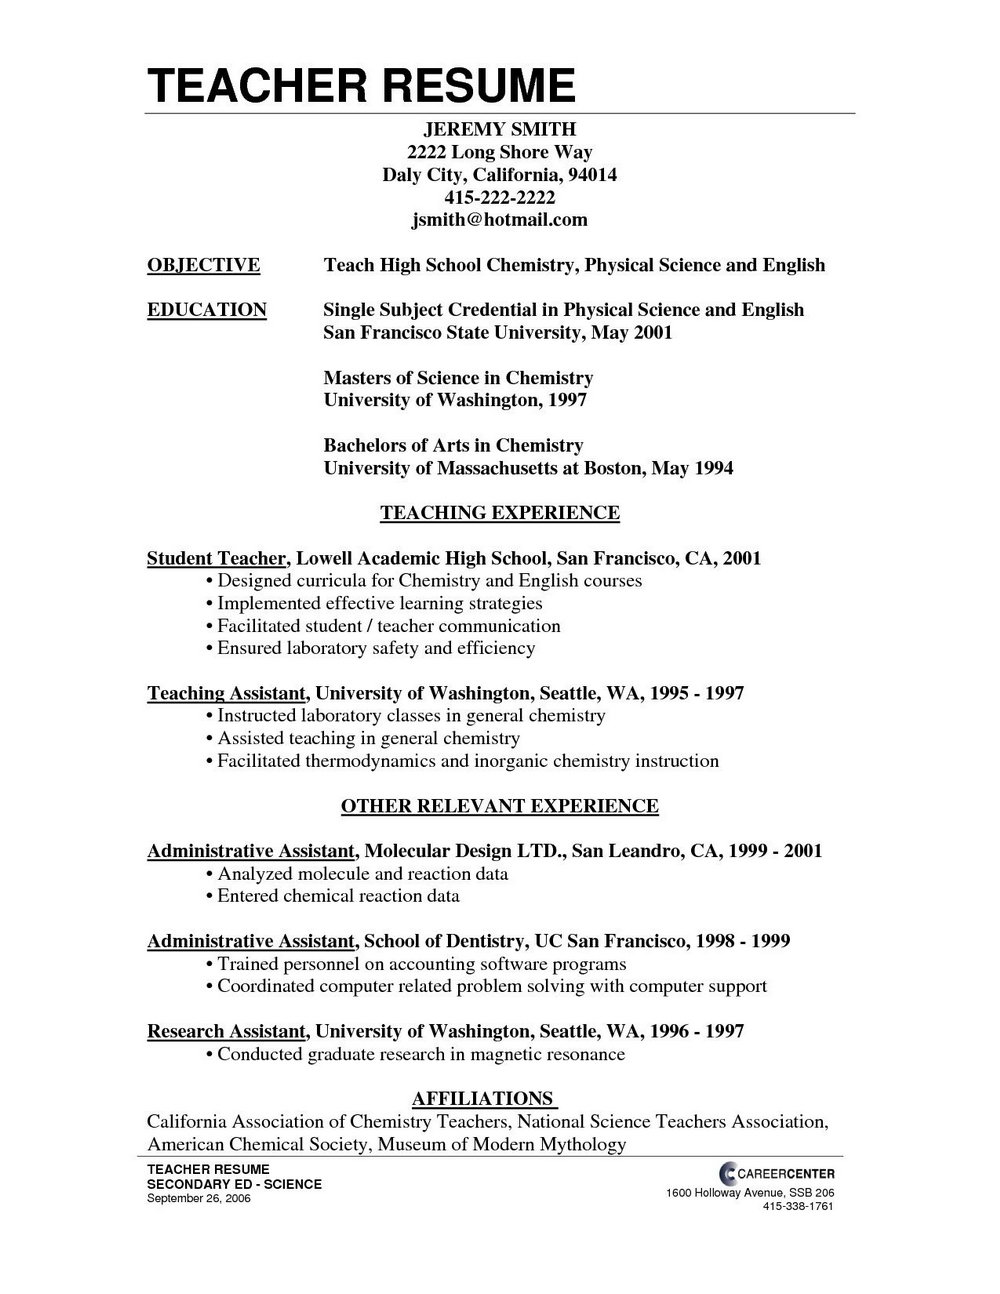 Free Resume Templates For Teaching Positions